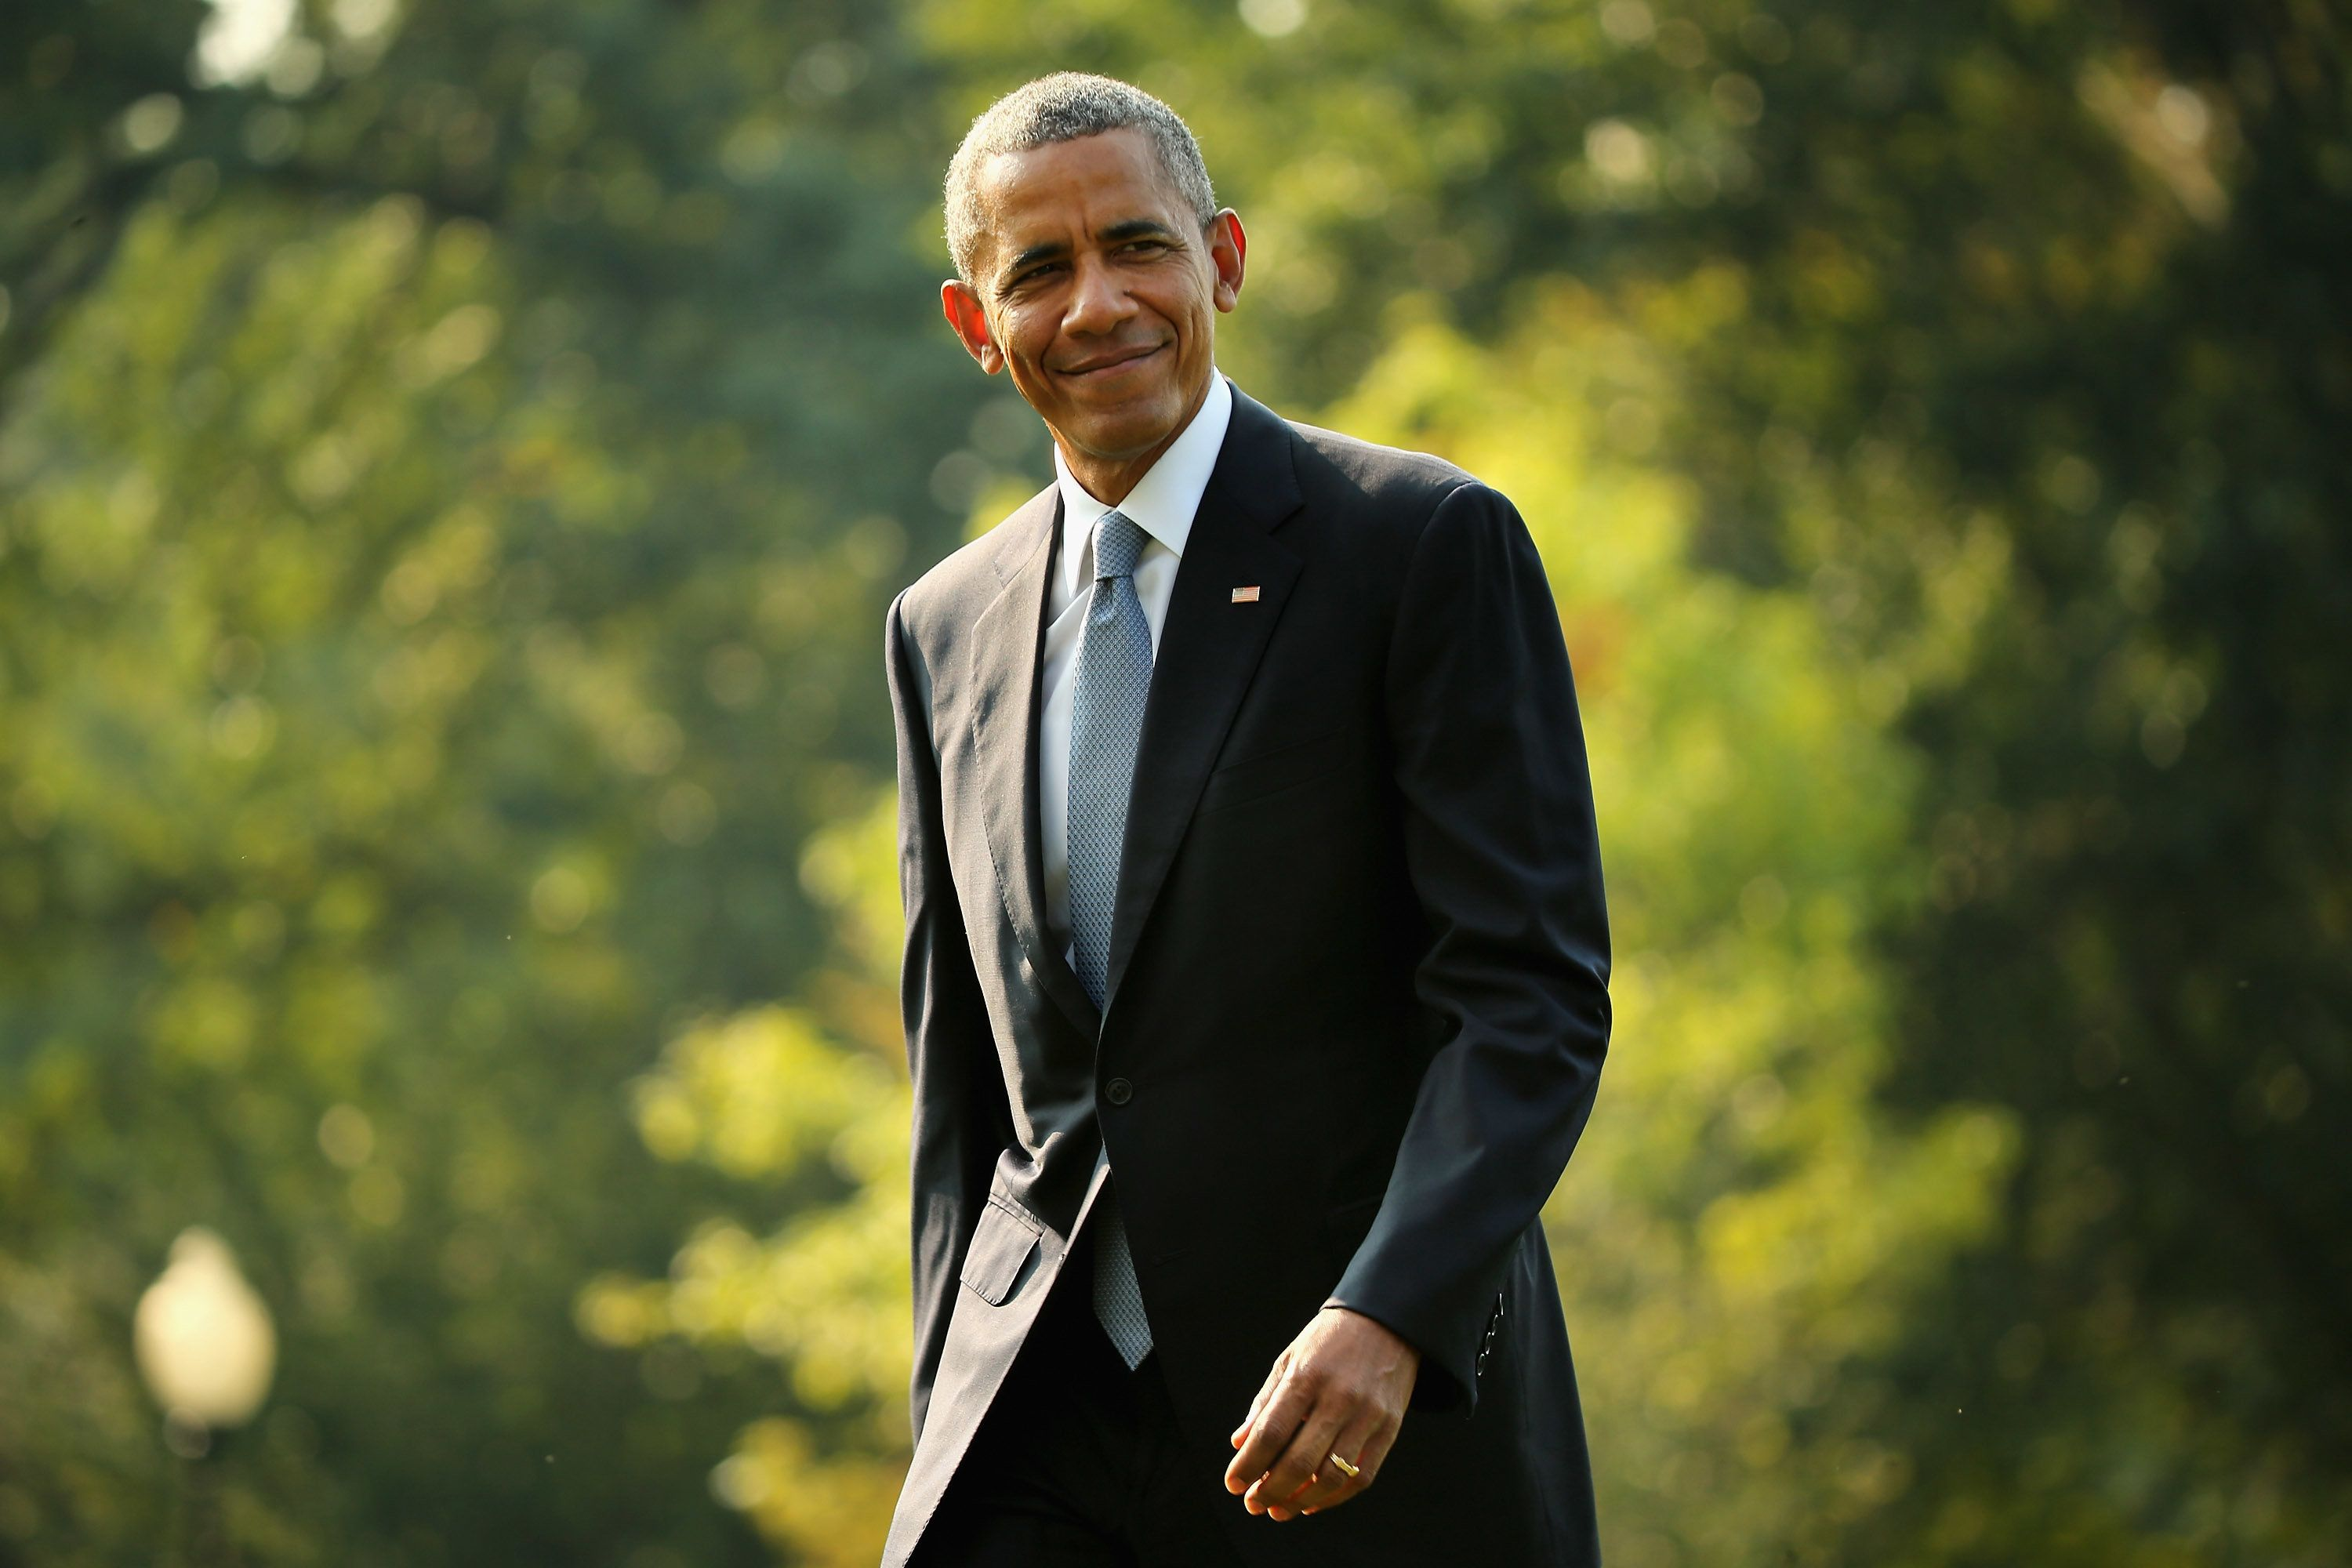 WASHINGTON, DC - SEPTEMBER 03: U.S. President Barack Obama waves to reporters after returning to the White House on board Marine One September 3, 2015 in Washington, DC. Obama spent three days in Alaska this week where he became the first sitting president to go to the Arctic Circle. (Photo by Chip Somodevilla/Getty Images)